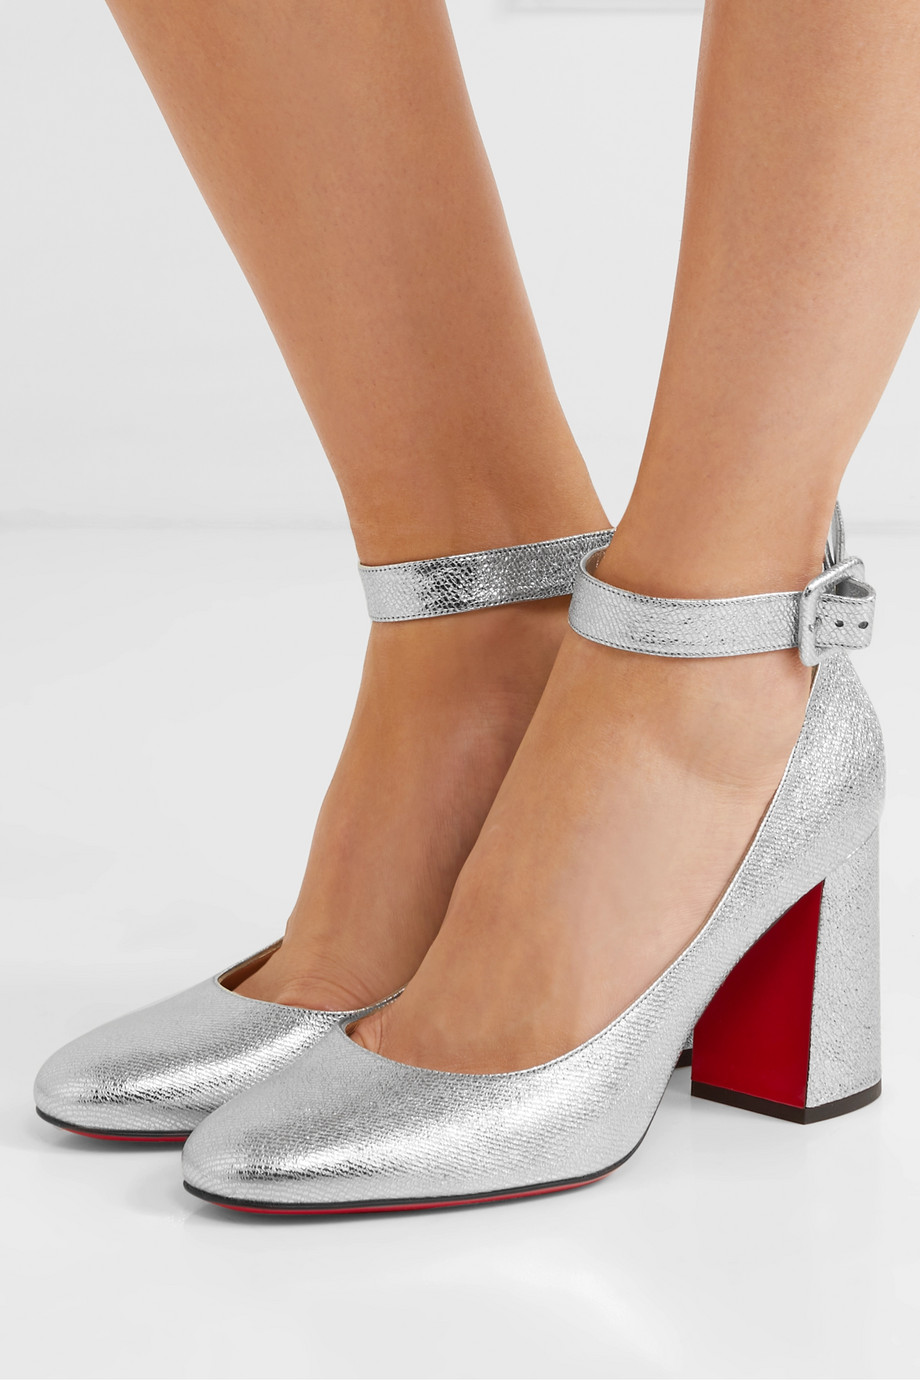 Christian Louboutin Soval 85 metallic textured-leather pumps